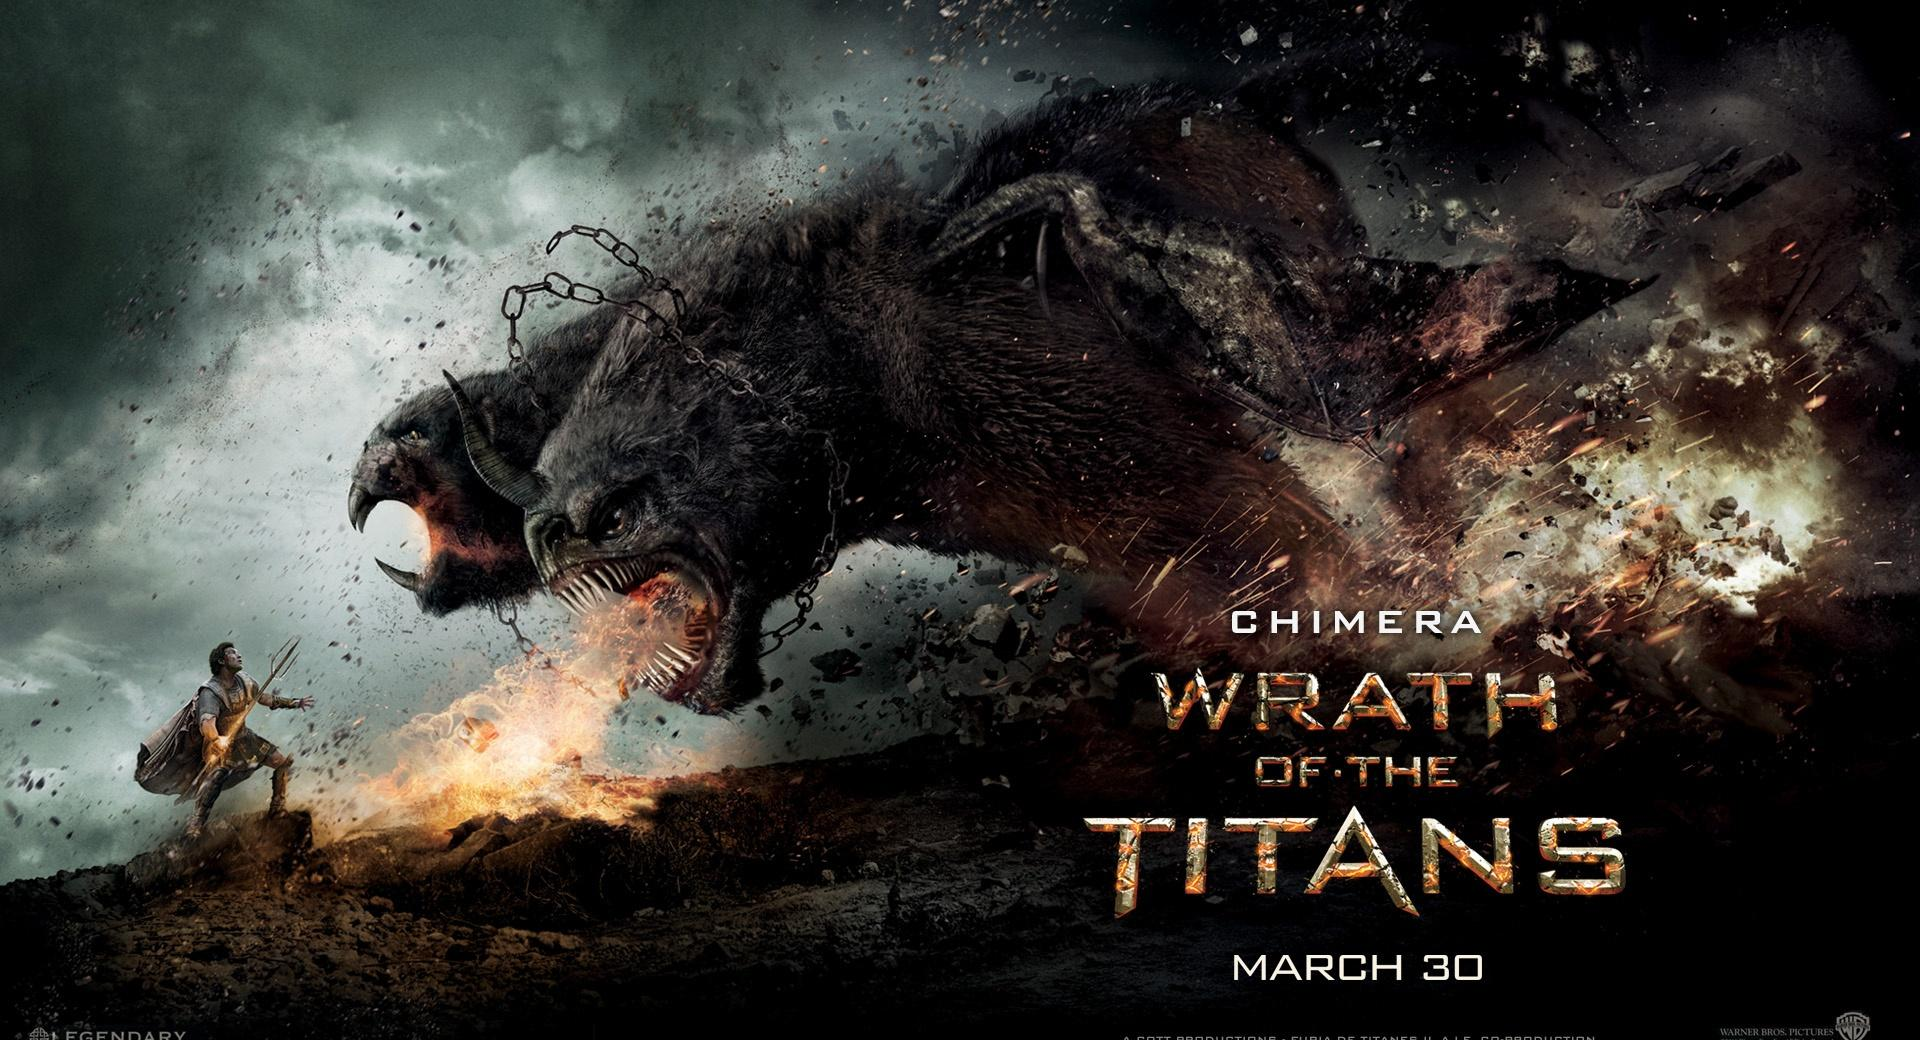 Wrath Of The Titans Chimera wallpapers HD quality